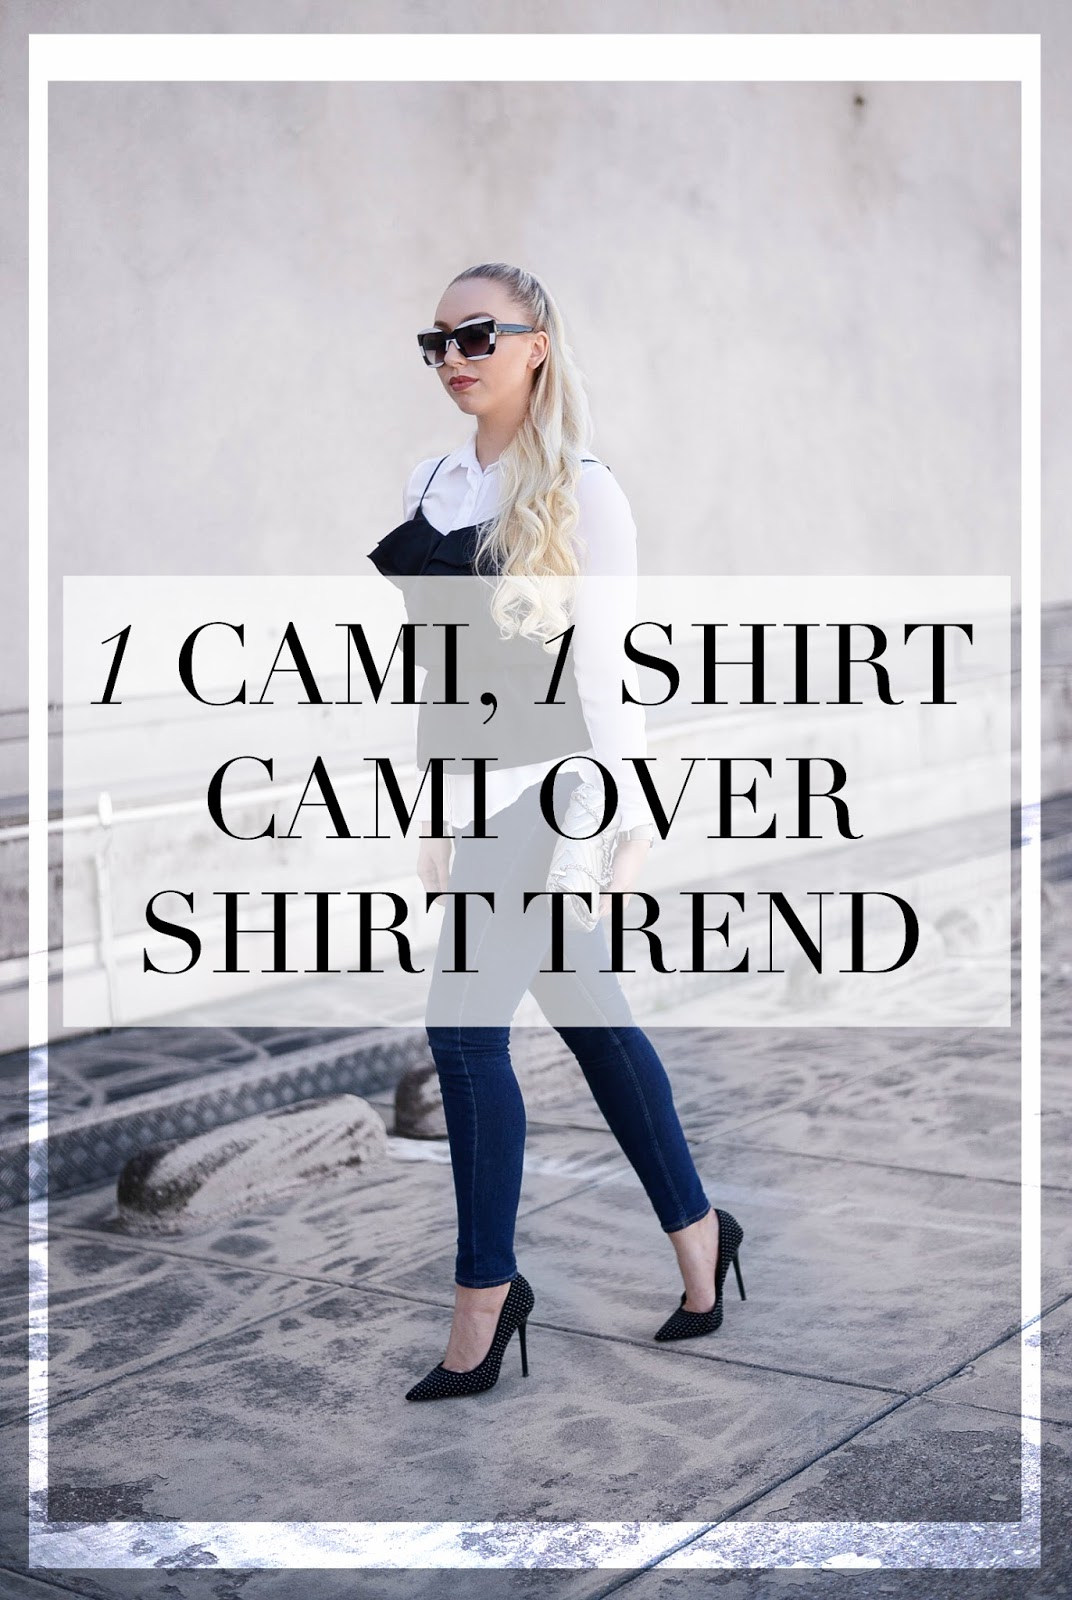 cami over shirt trend